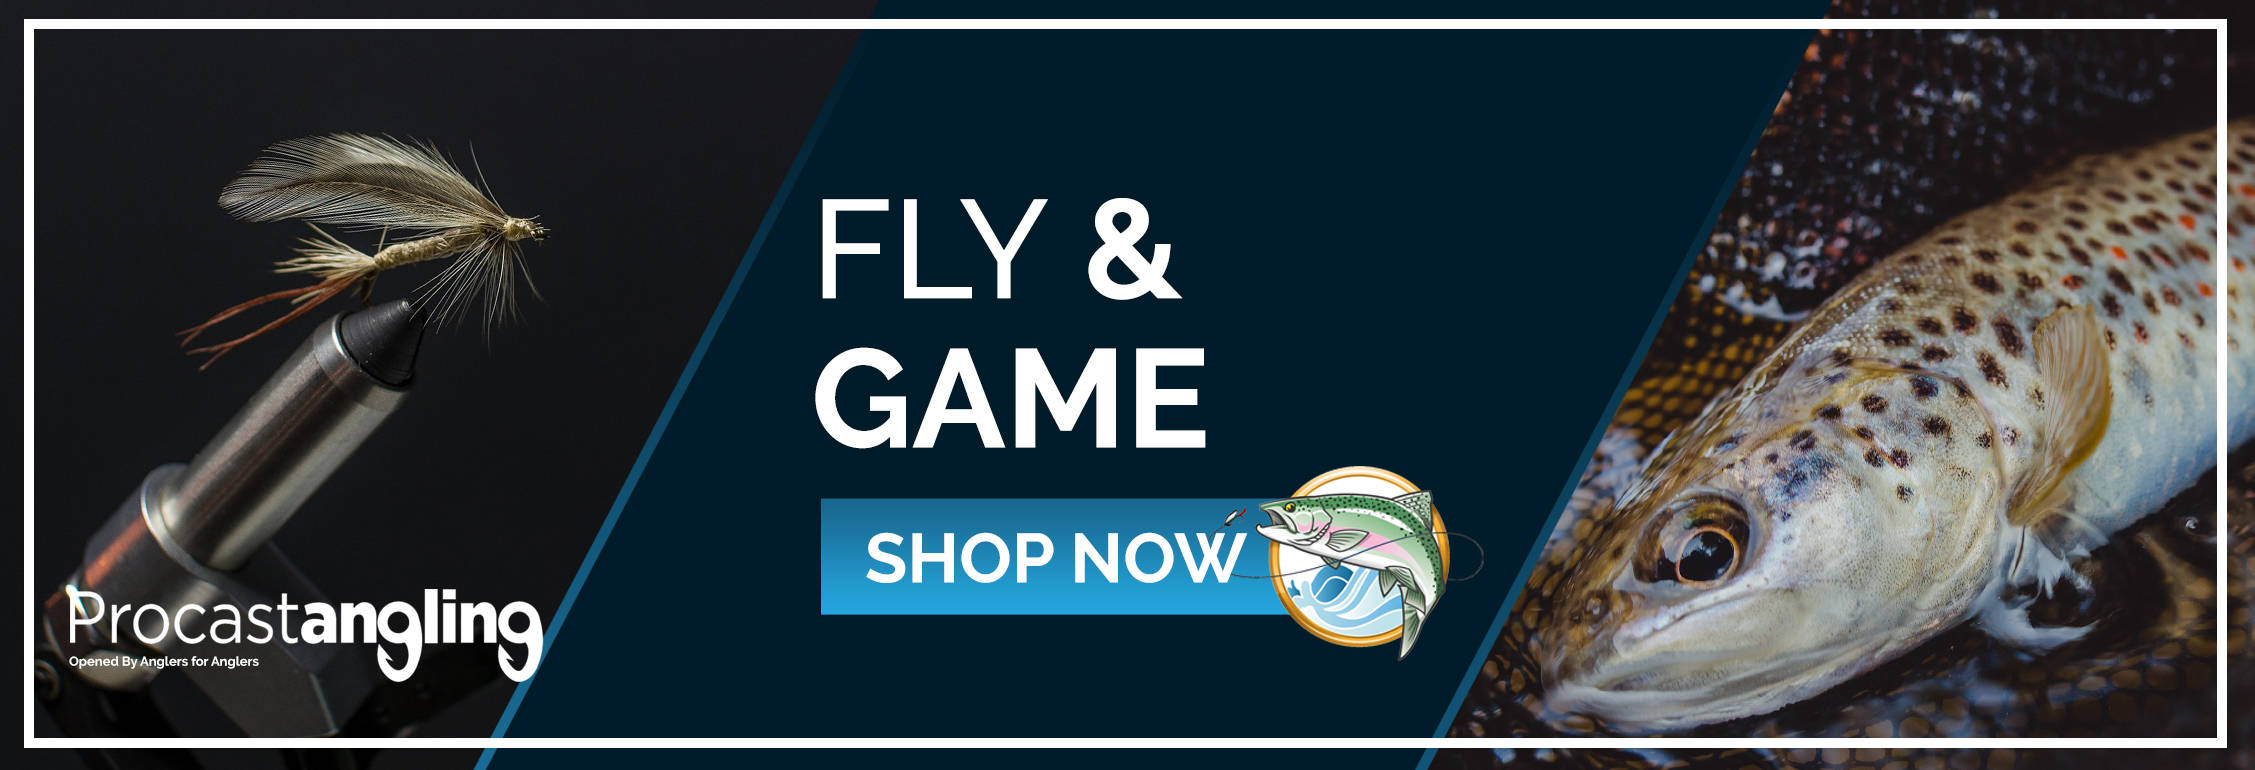 Fly & Game